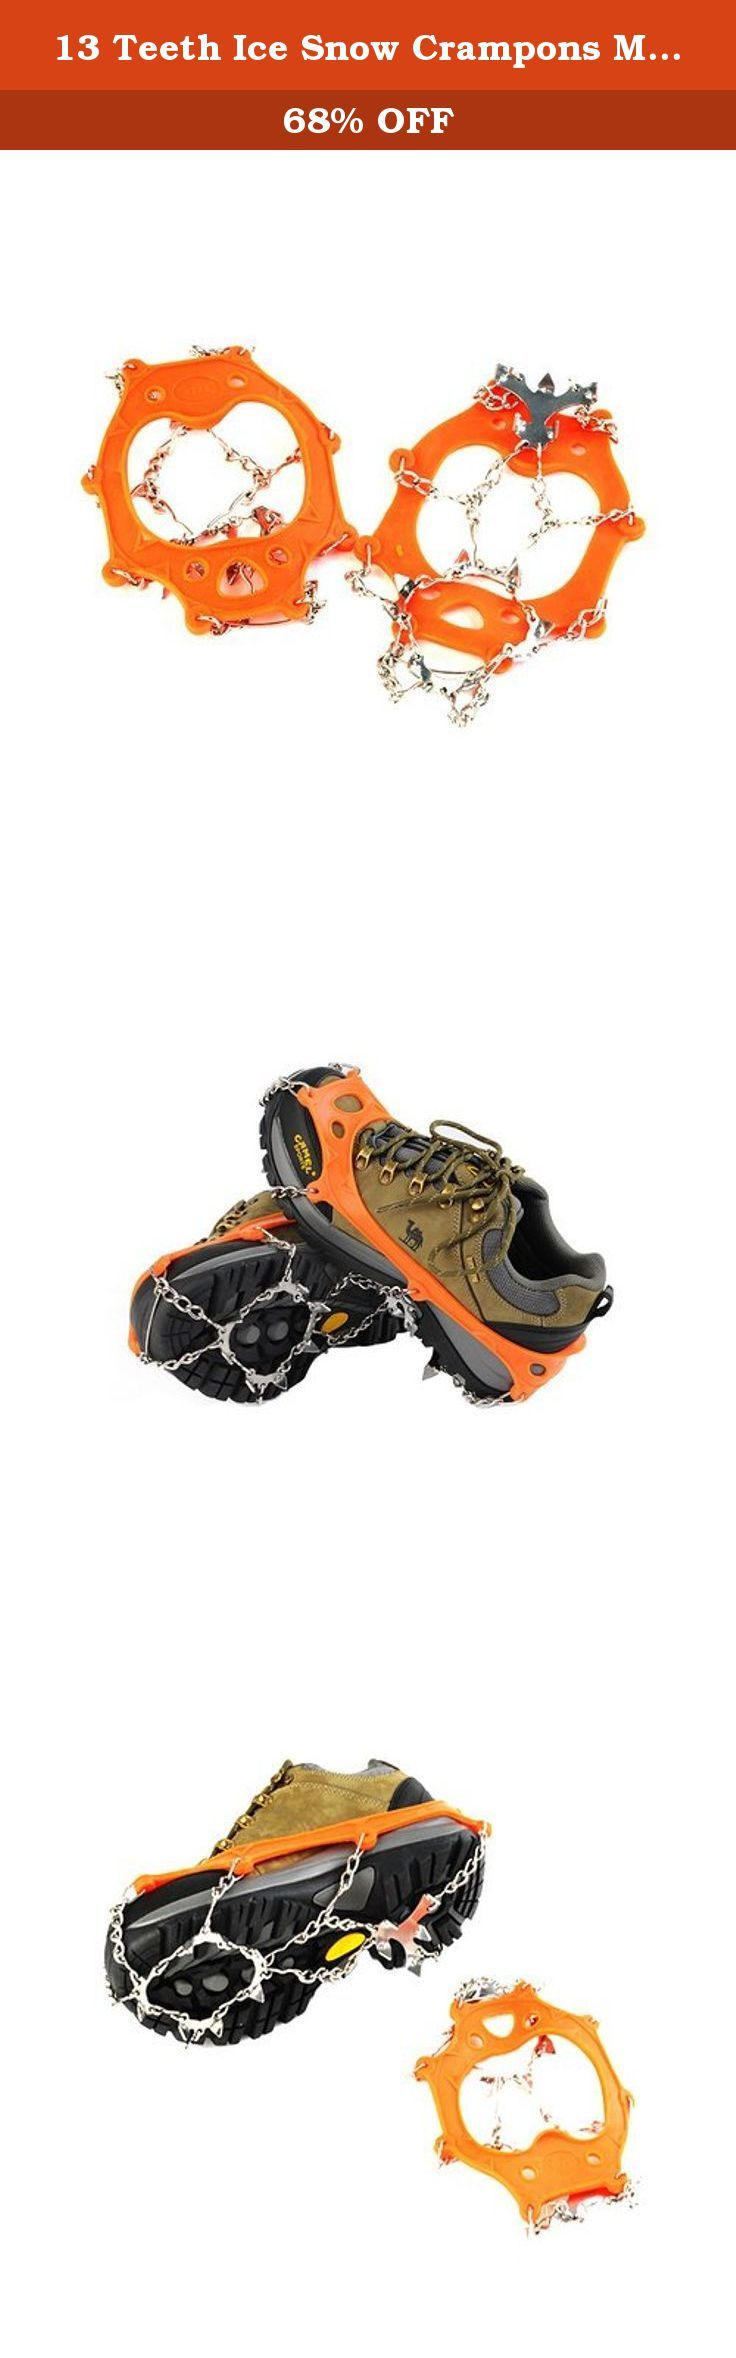 13 Teeth Ice Snow Crampons Mountaineering Equipment Hybrid Crampon Foot Bouldering Shoes Quickdraws Camp Crampons Rock Climbing Tools 1 Pair Orange. Material: TPR( Thermal Plastic Rubber) and stainless steel Color:black orange Package:1 pair + elastic band Cooperate with all kinds of sport shoes, hiking shoes, and mountain boots, etc. Crampons ONLY, shoes displayed NOT included.